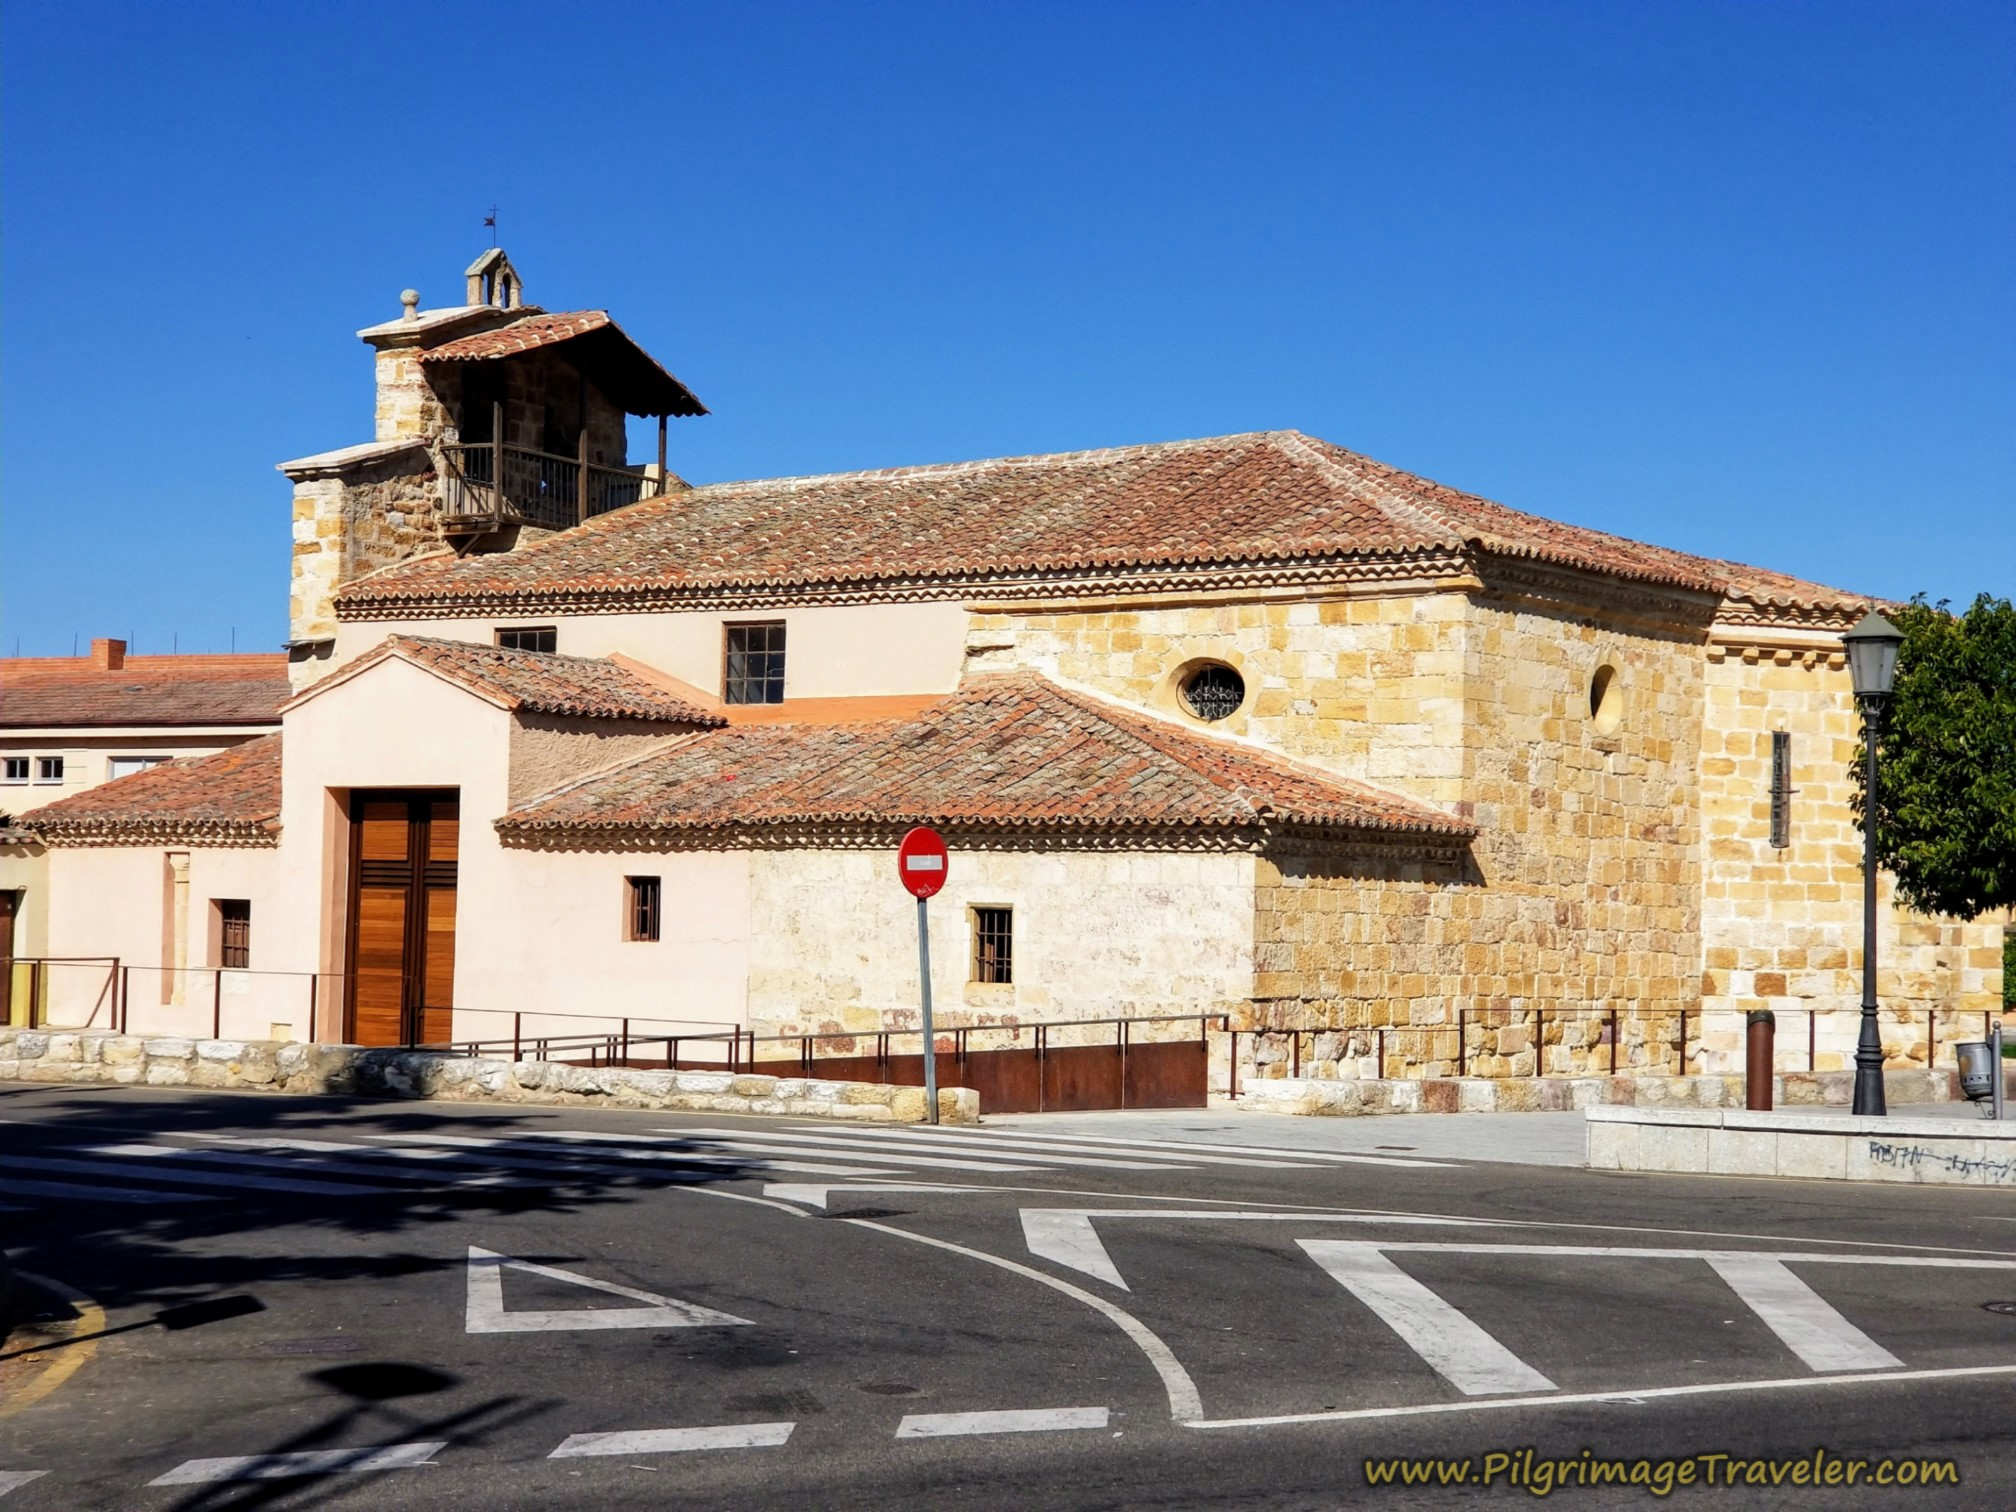 Pass by the Iglesia de San Frontis